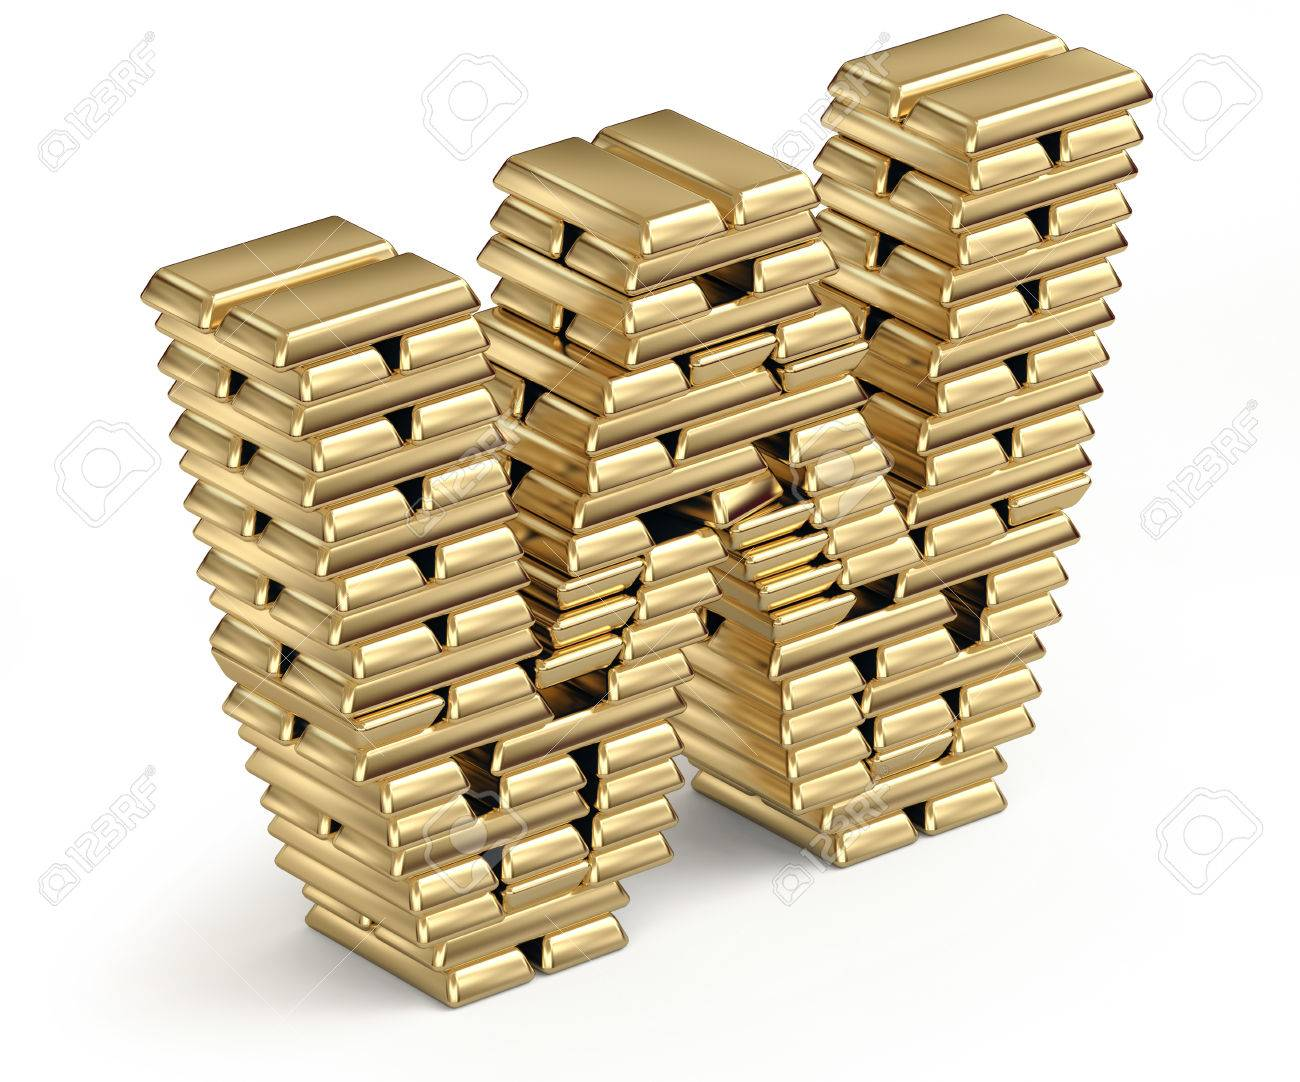 Letter W From Stacked Gold Bars D In Isometric On White Stock Photo